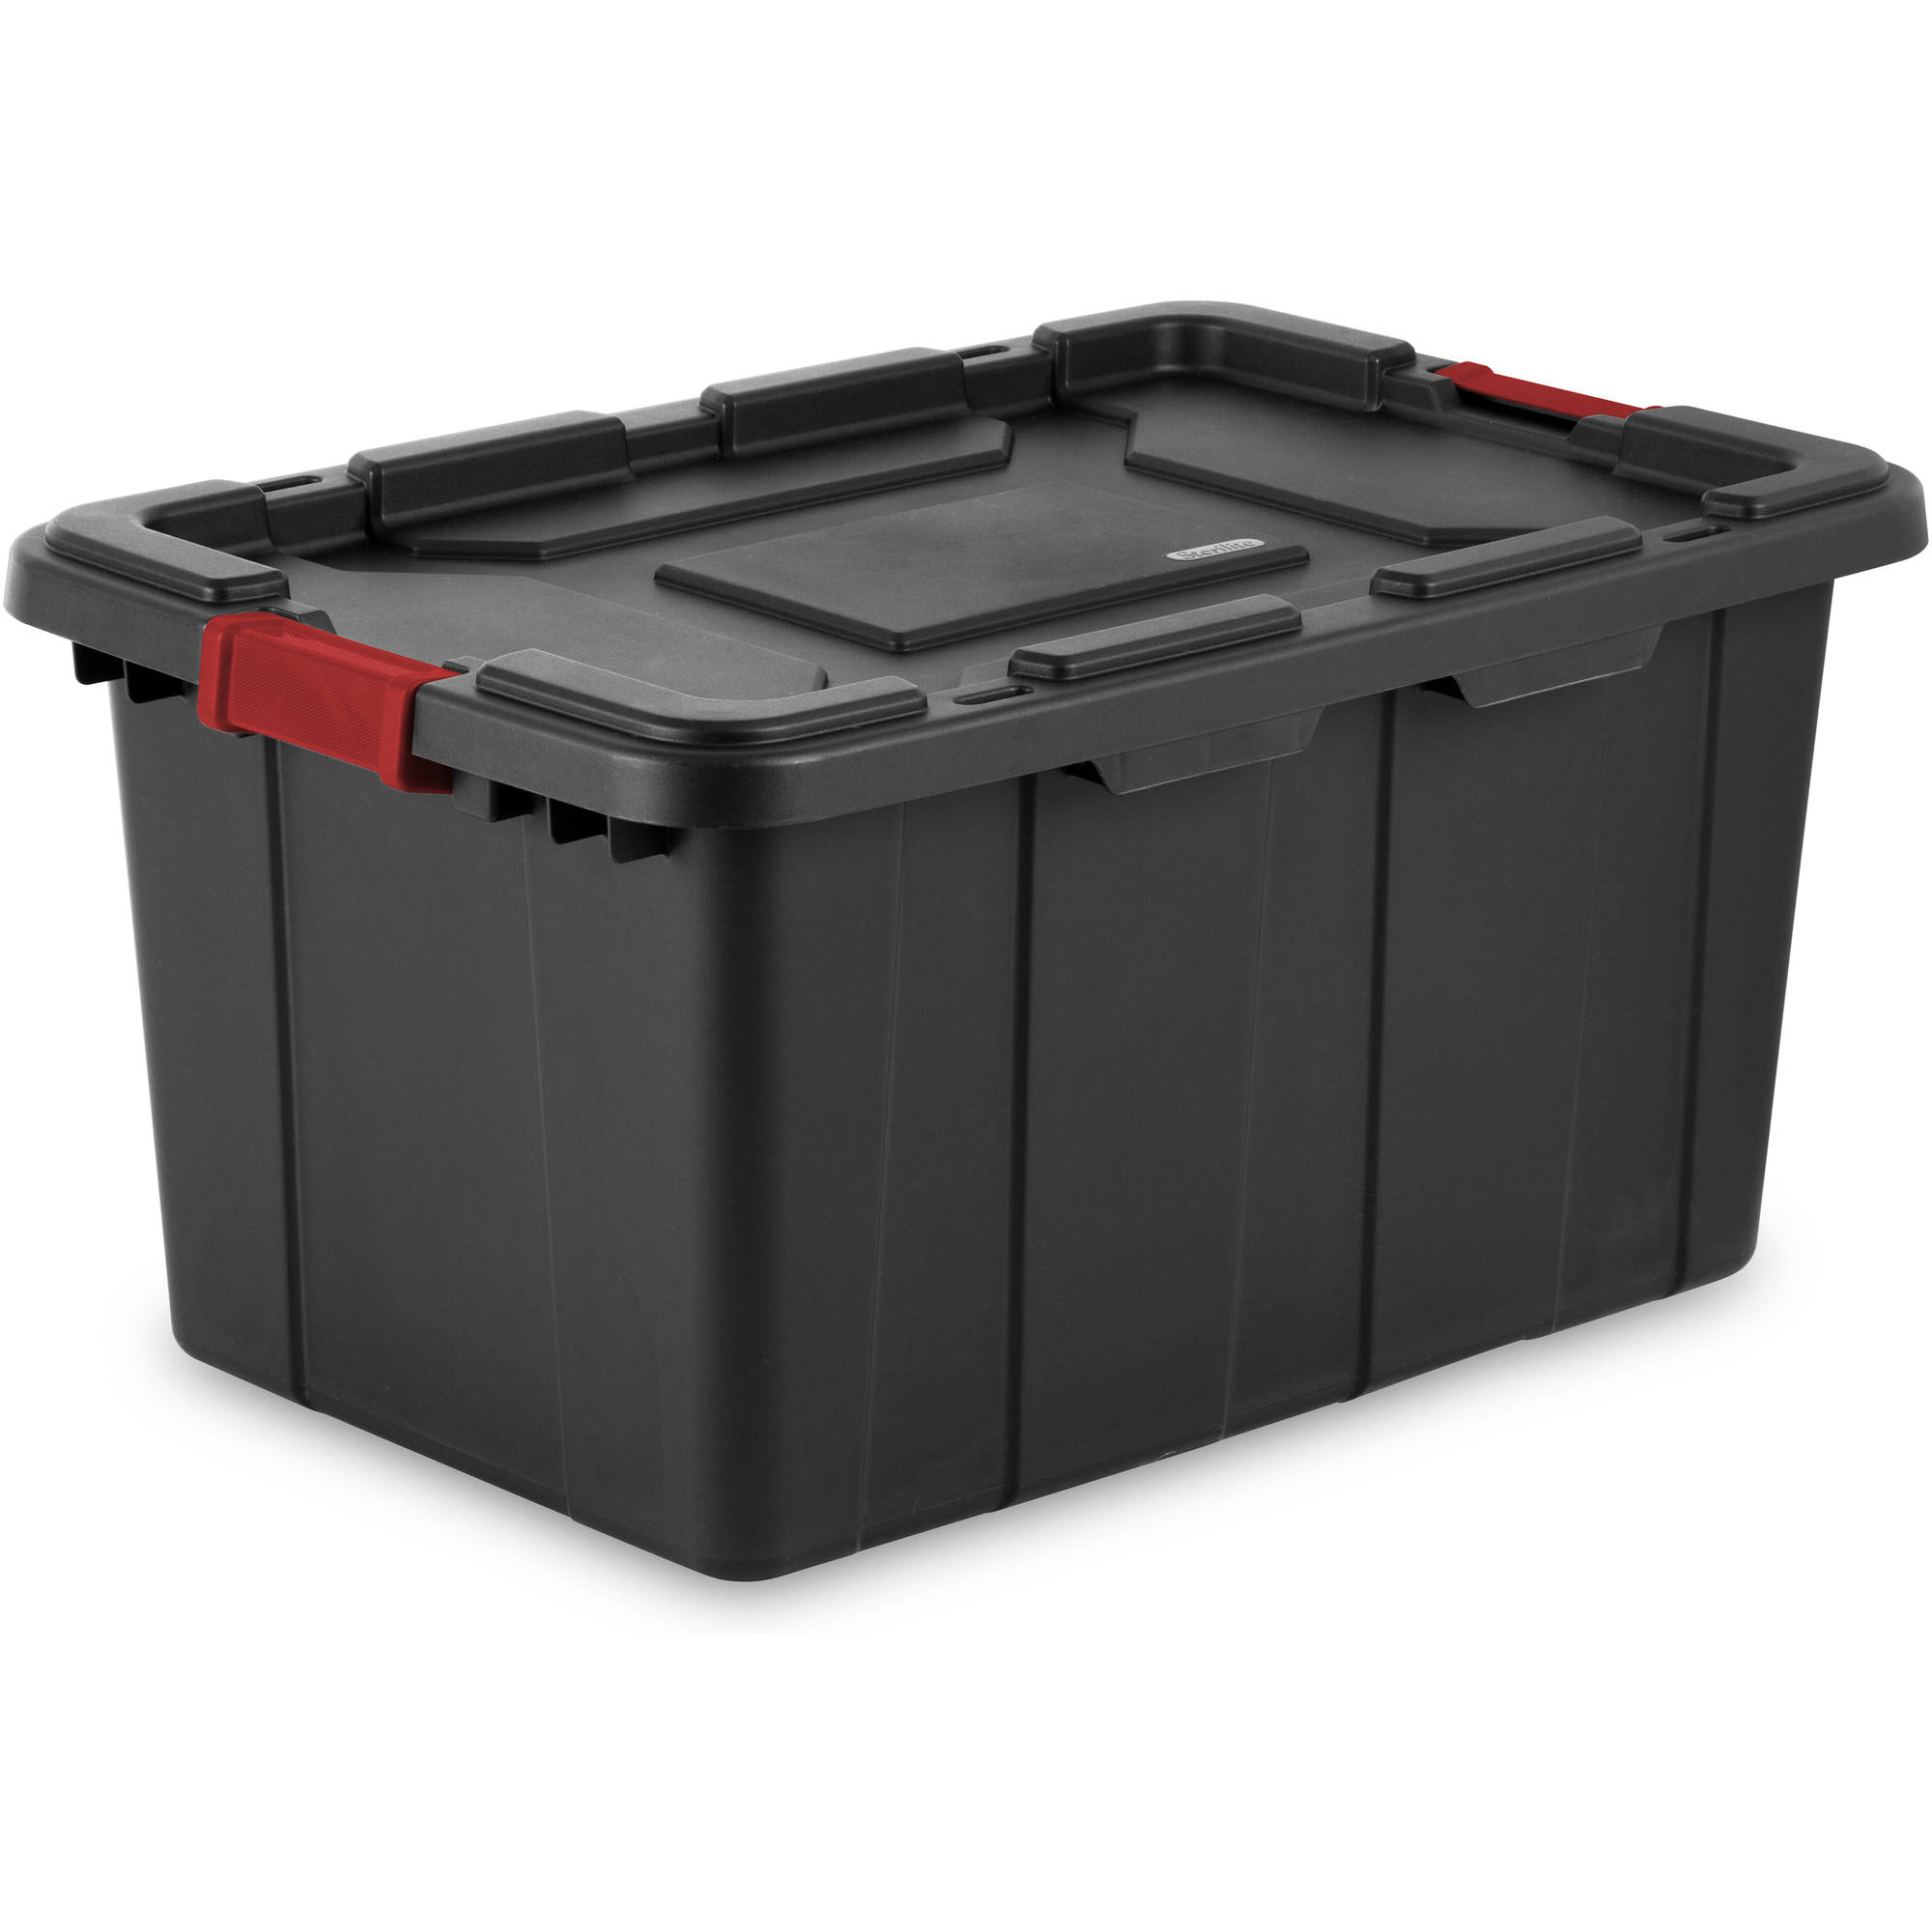 Sterilite 27 gal Industrial Tote- Black (Available in Case of 4 or Single Unit)